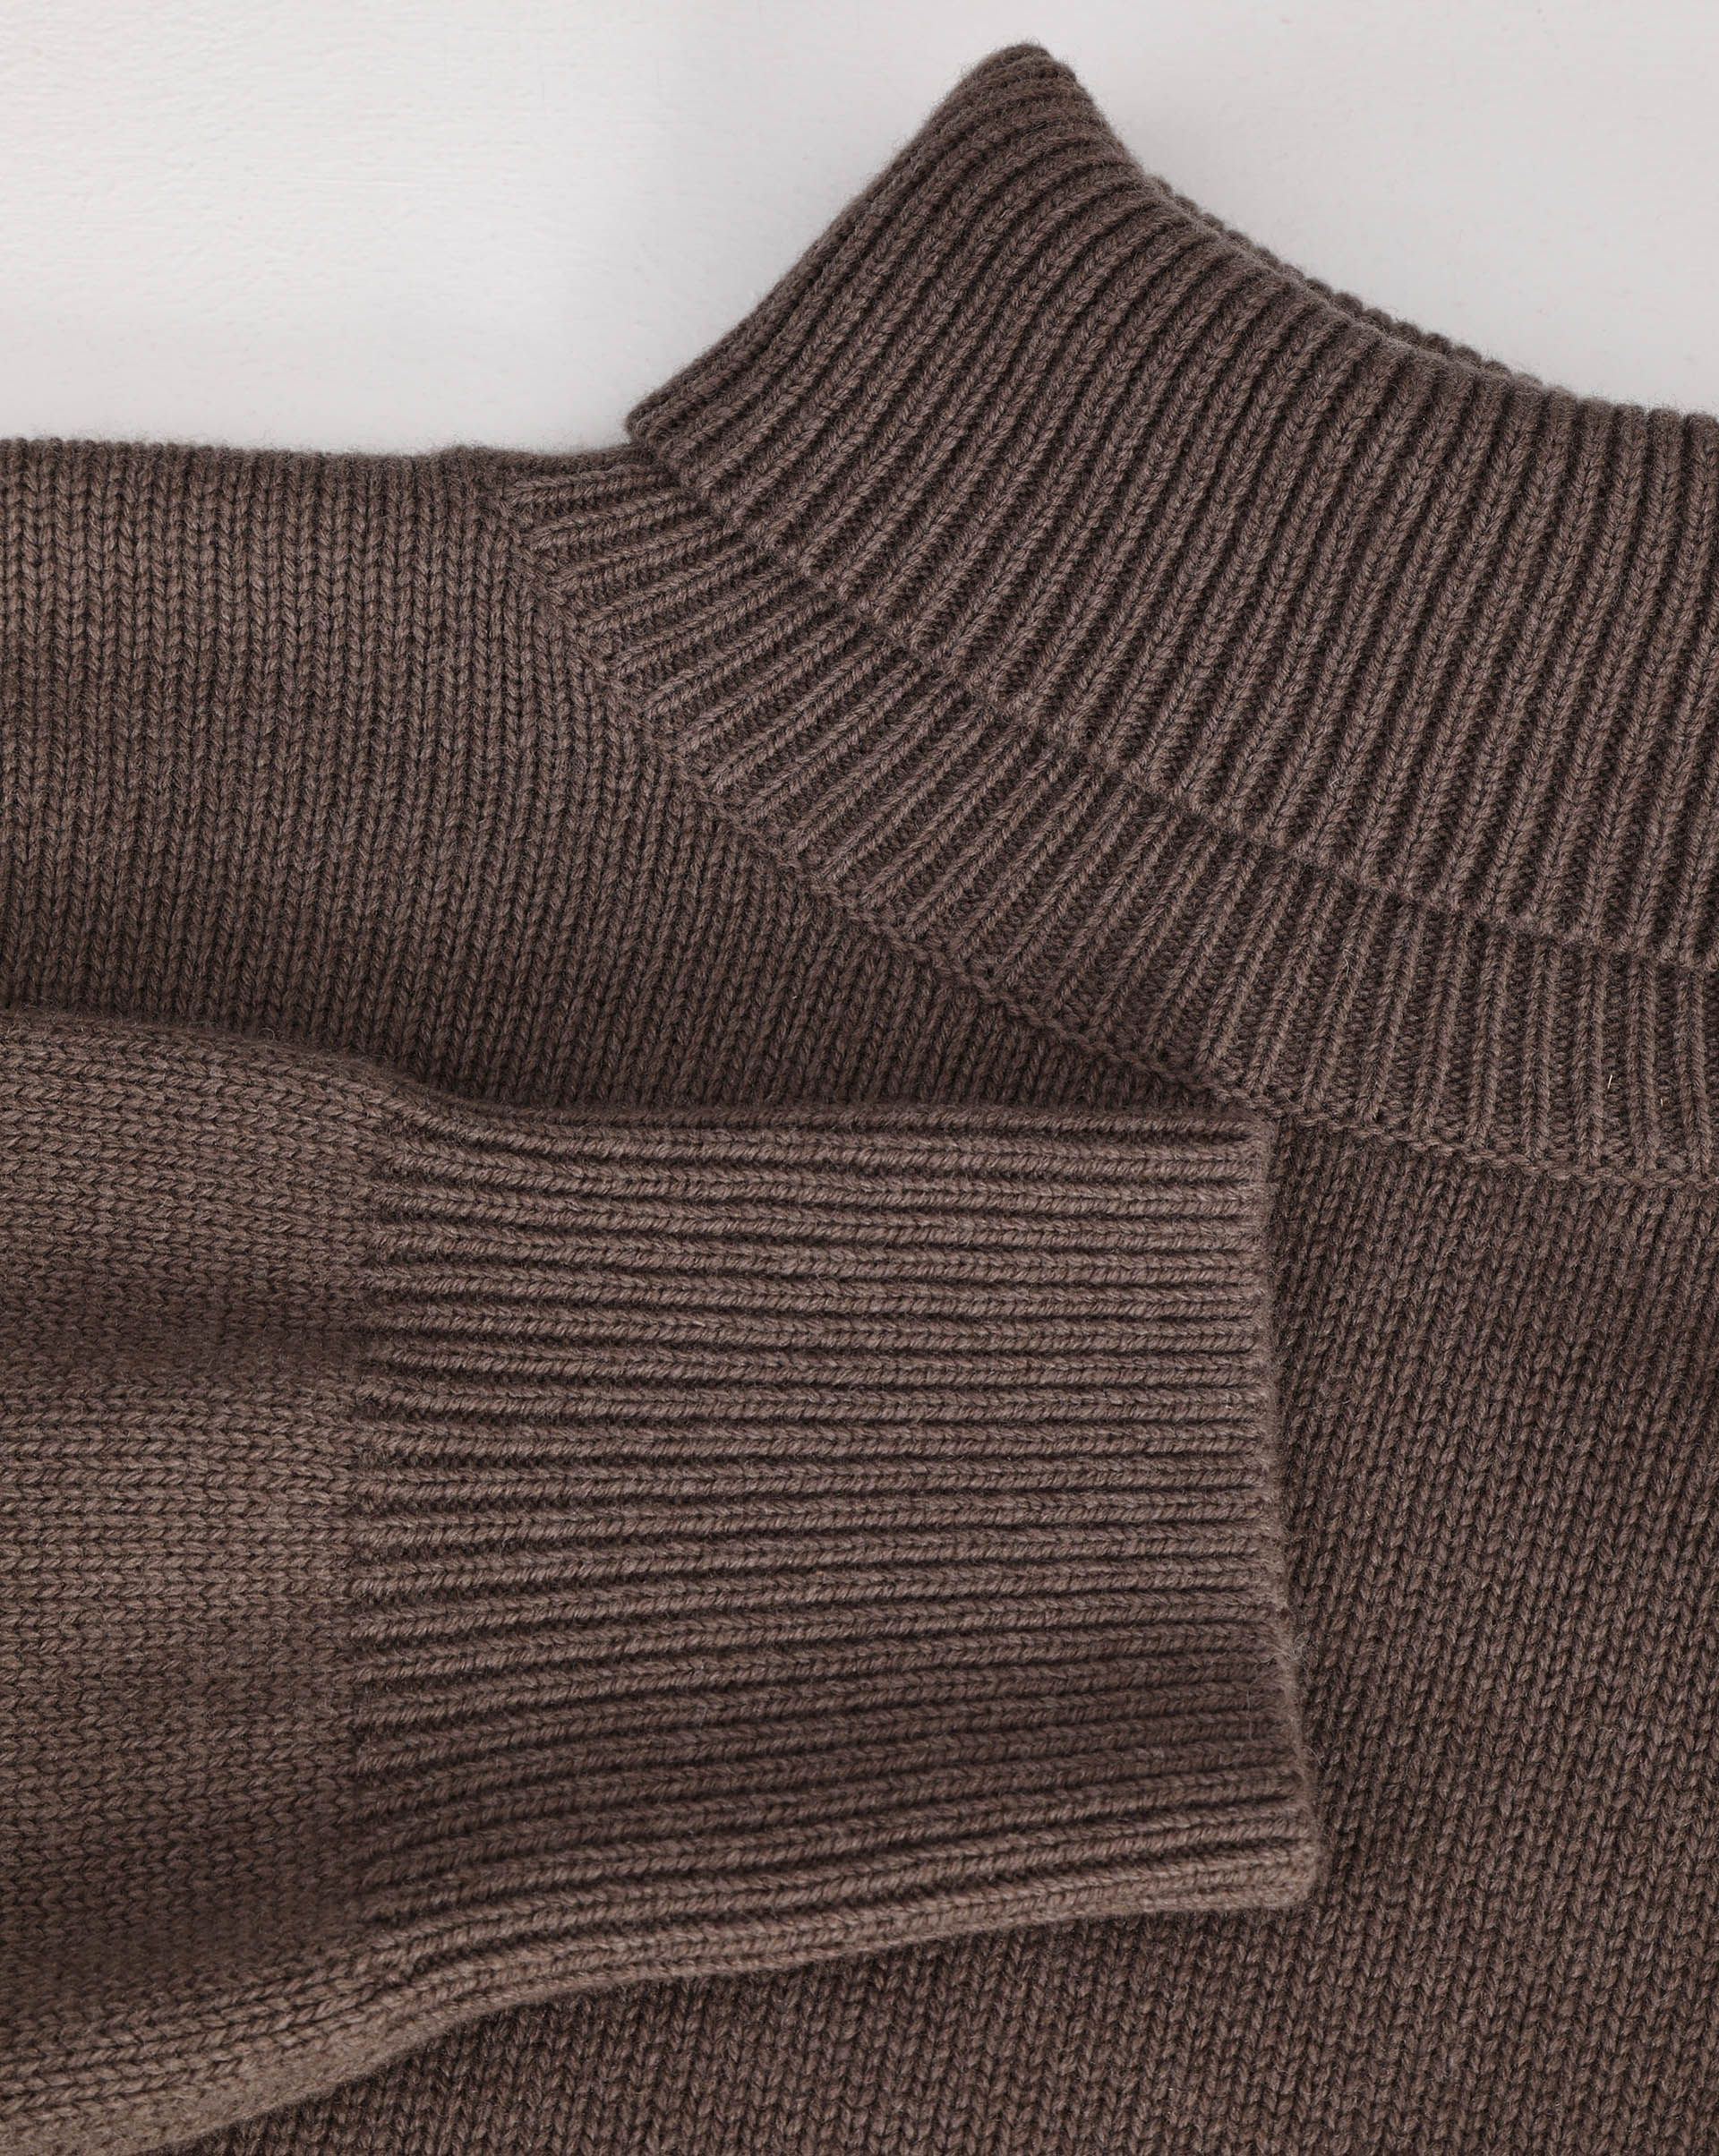 Turtleneck sweater - 12 STOREEZ